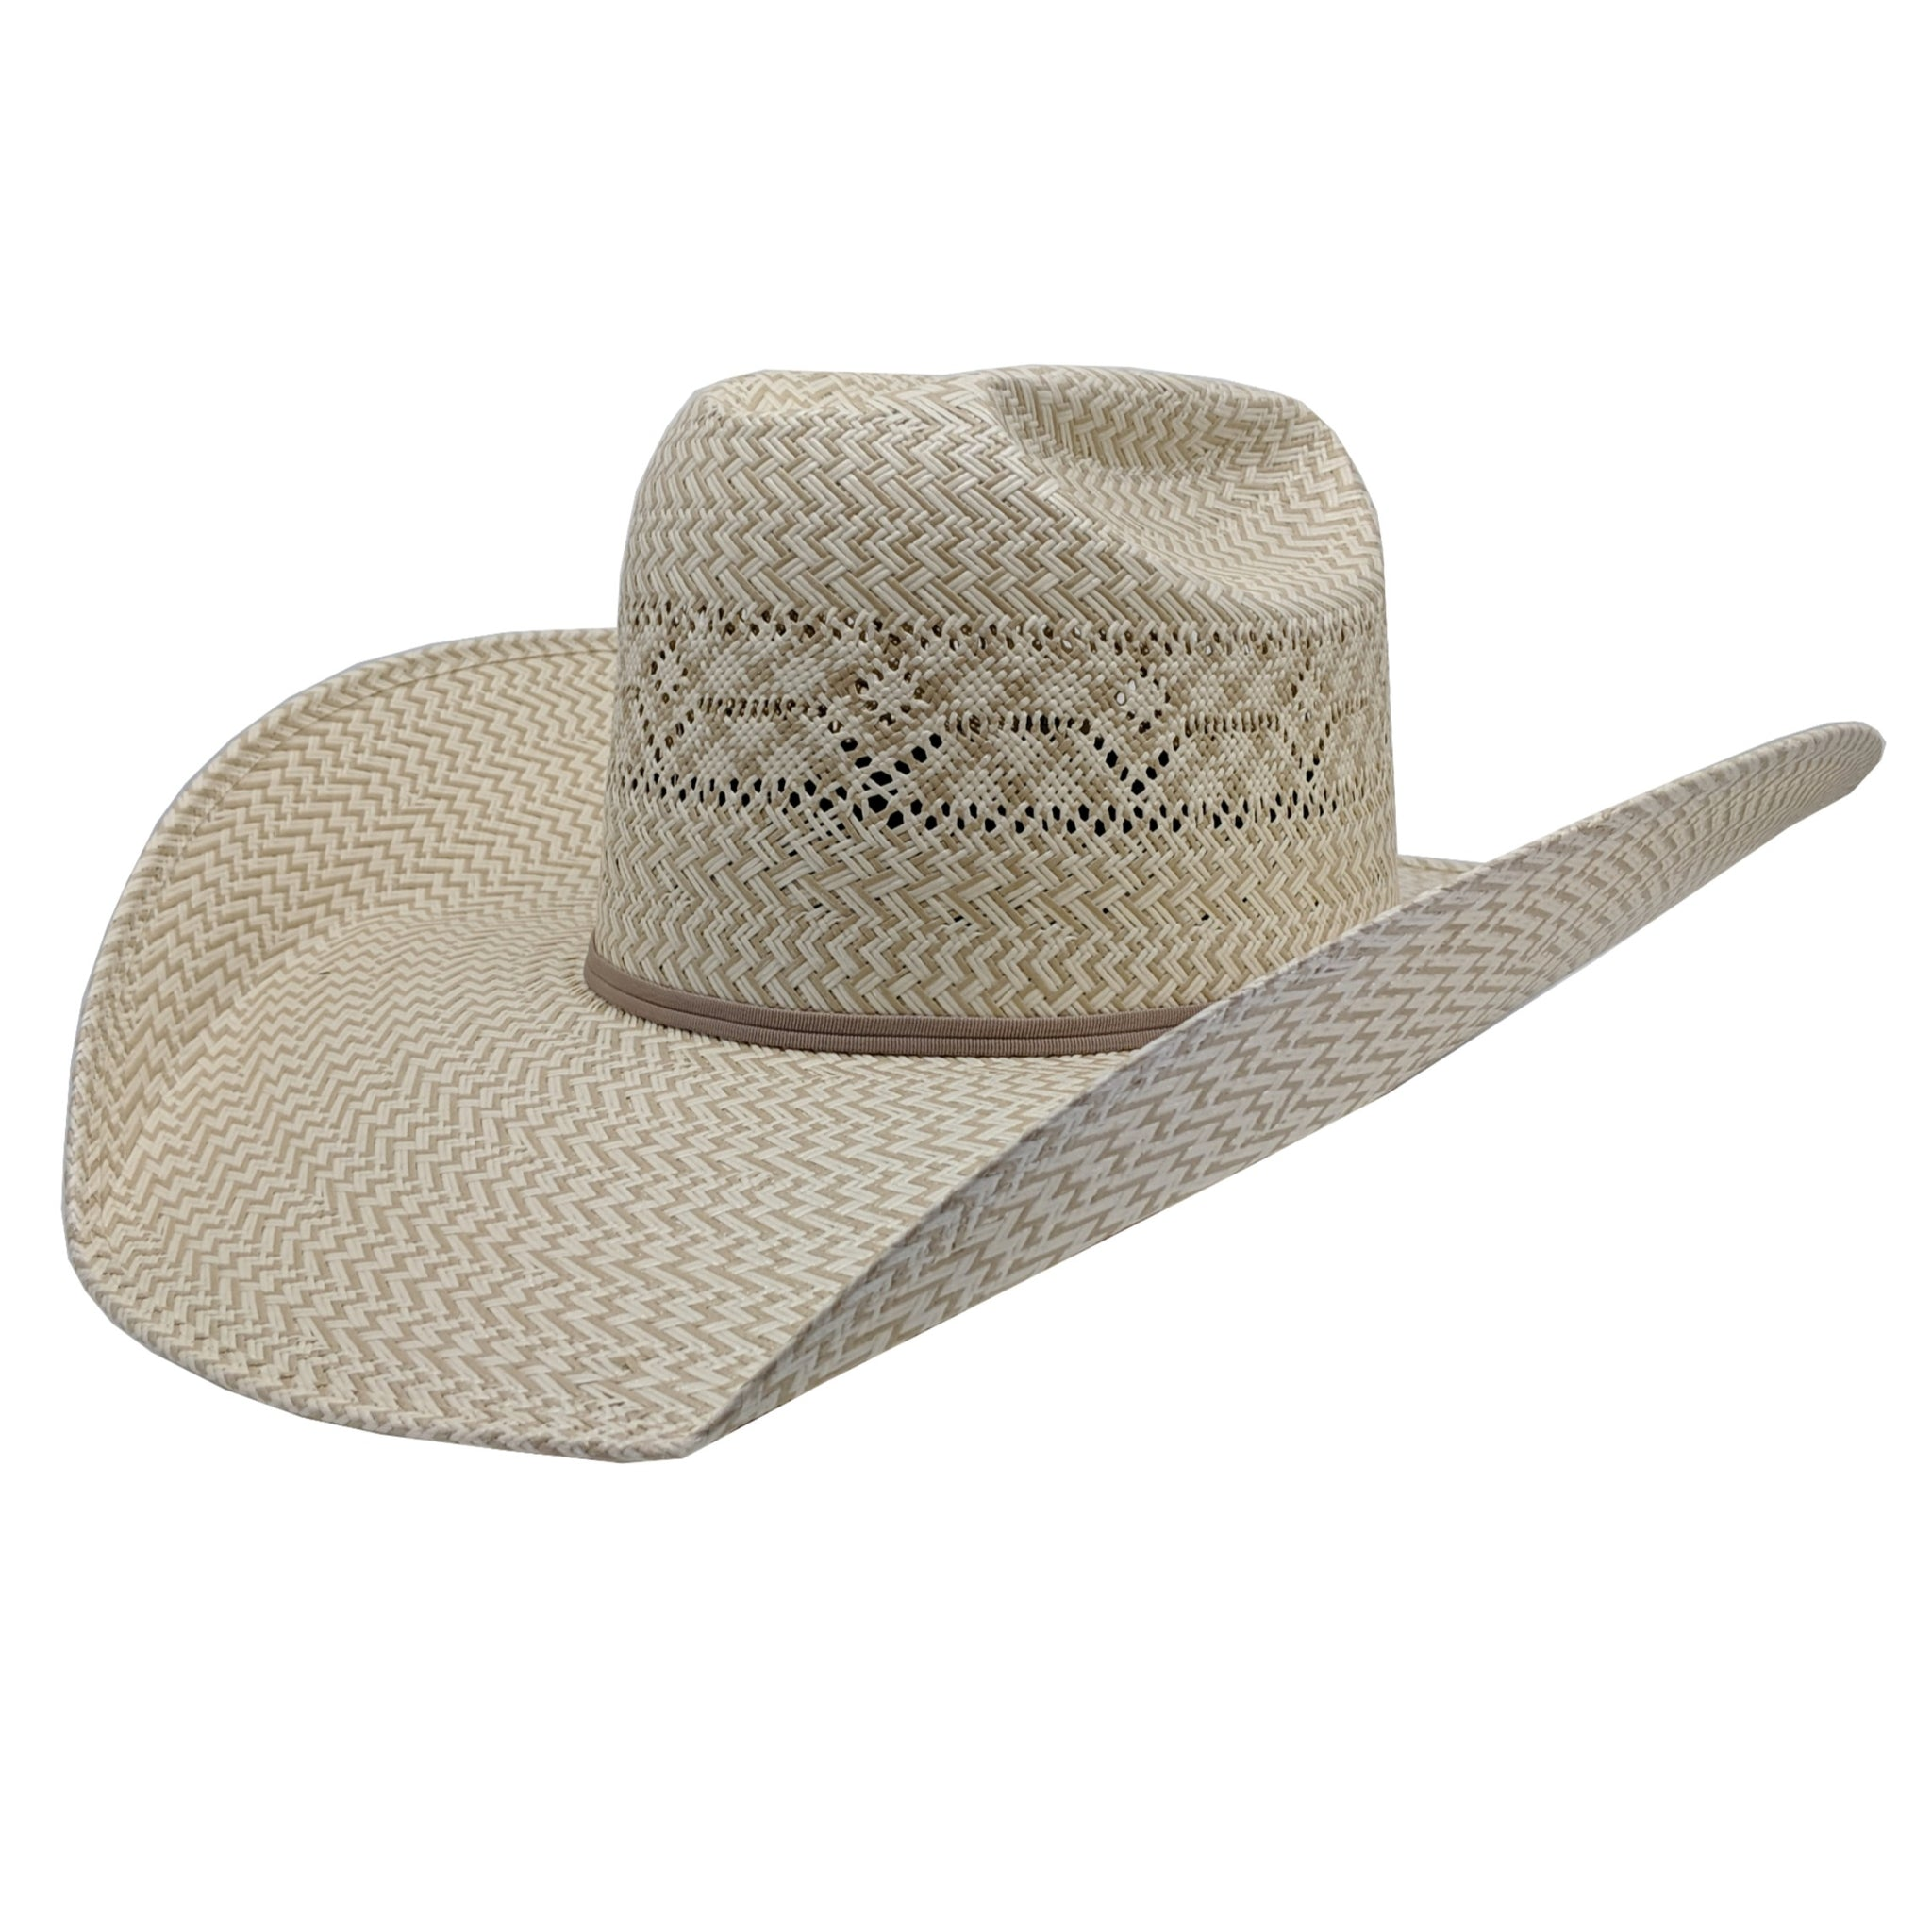 Atwood Hat Company Stockyards Designed Straw Hat